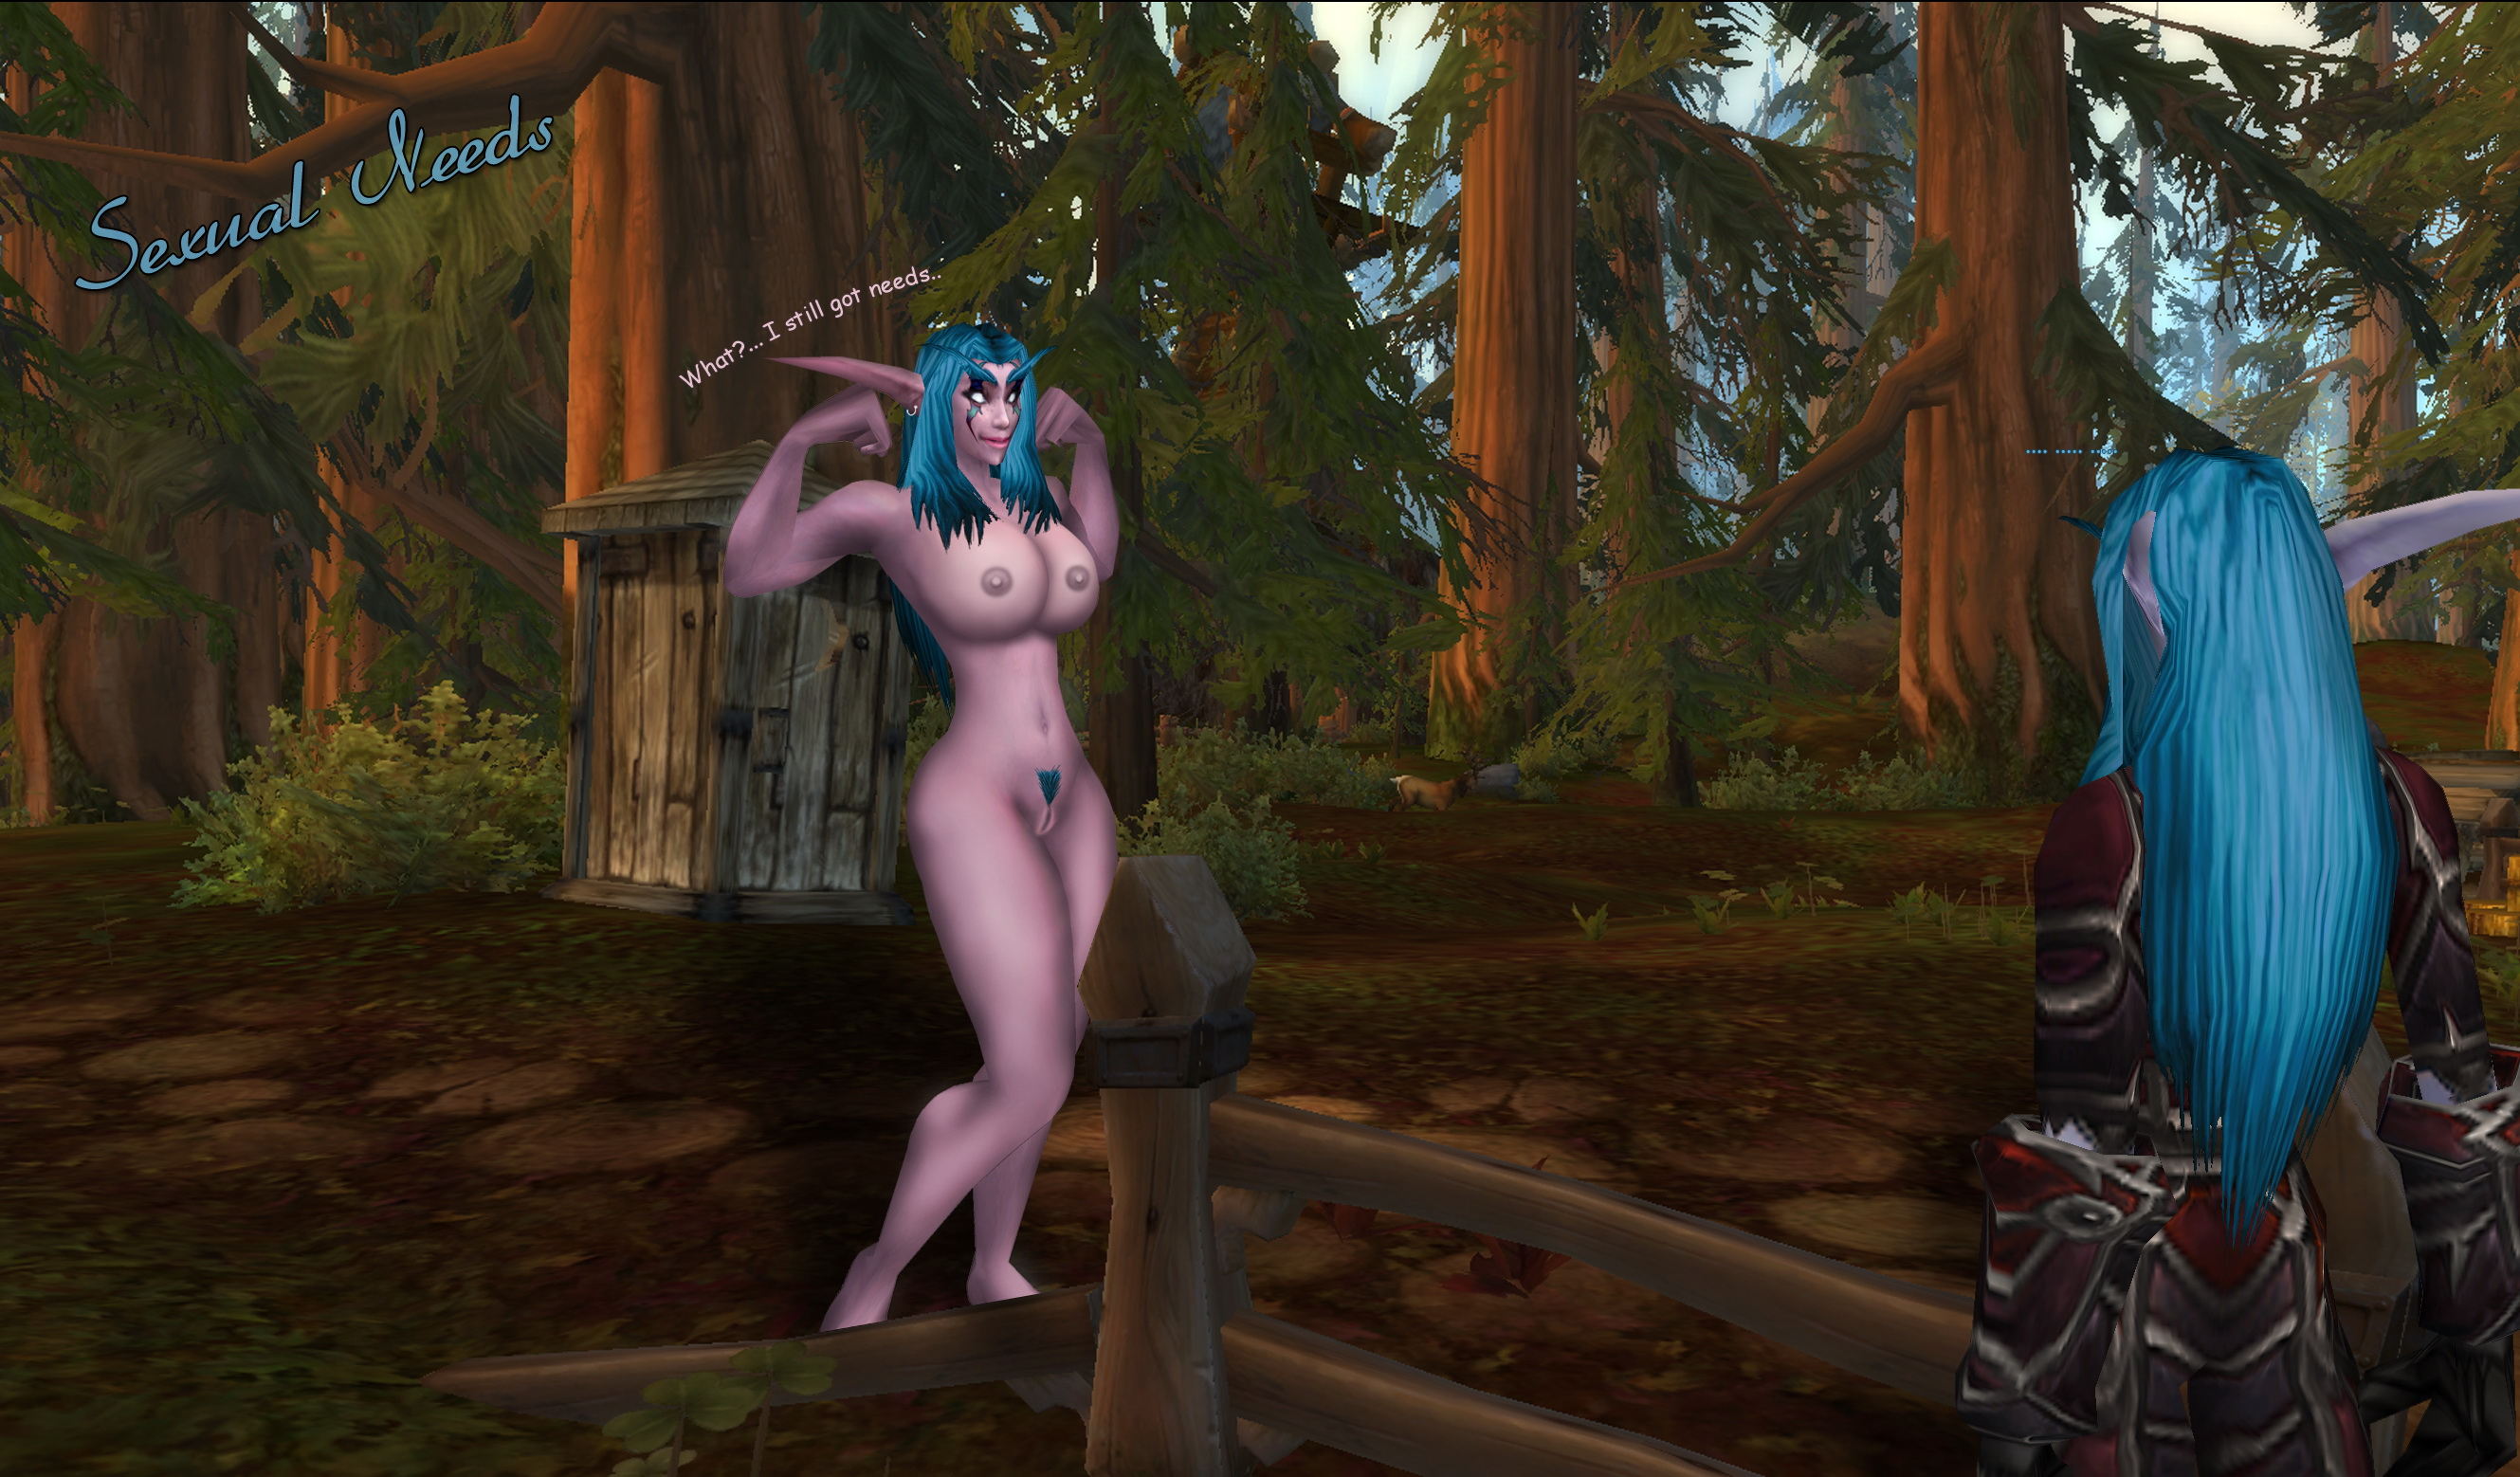 Naked addon world of warcraft nsfw scene